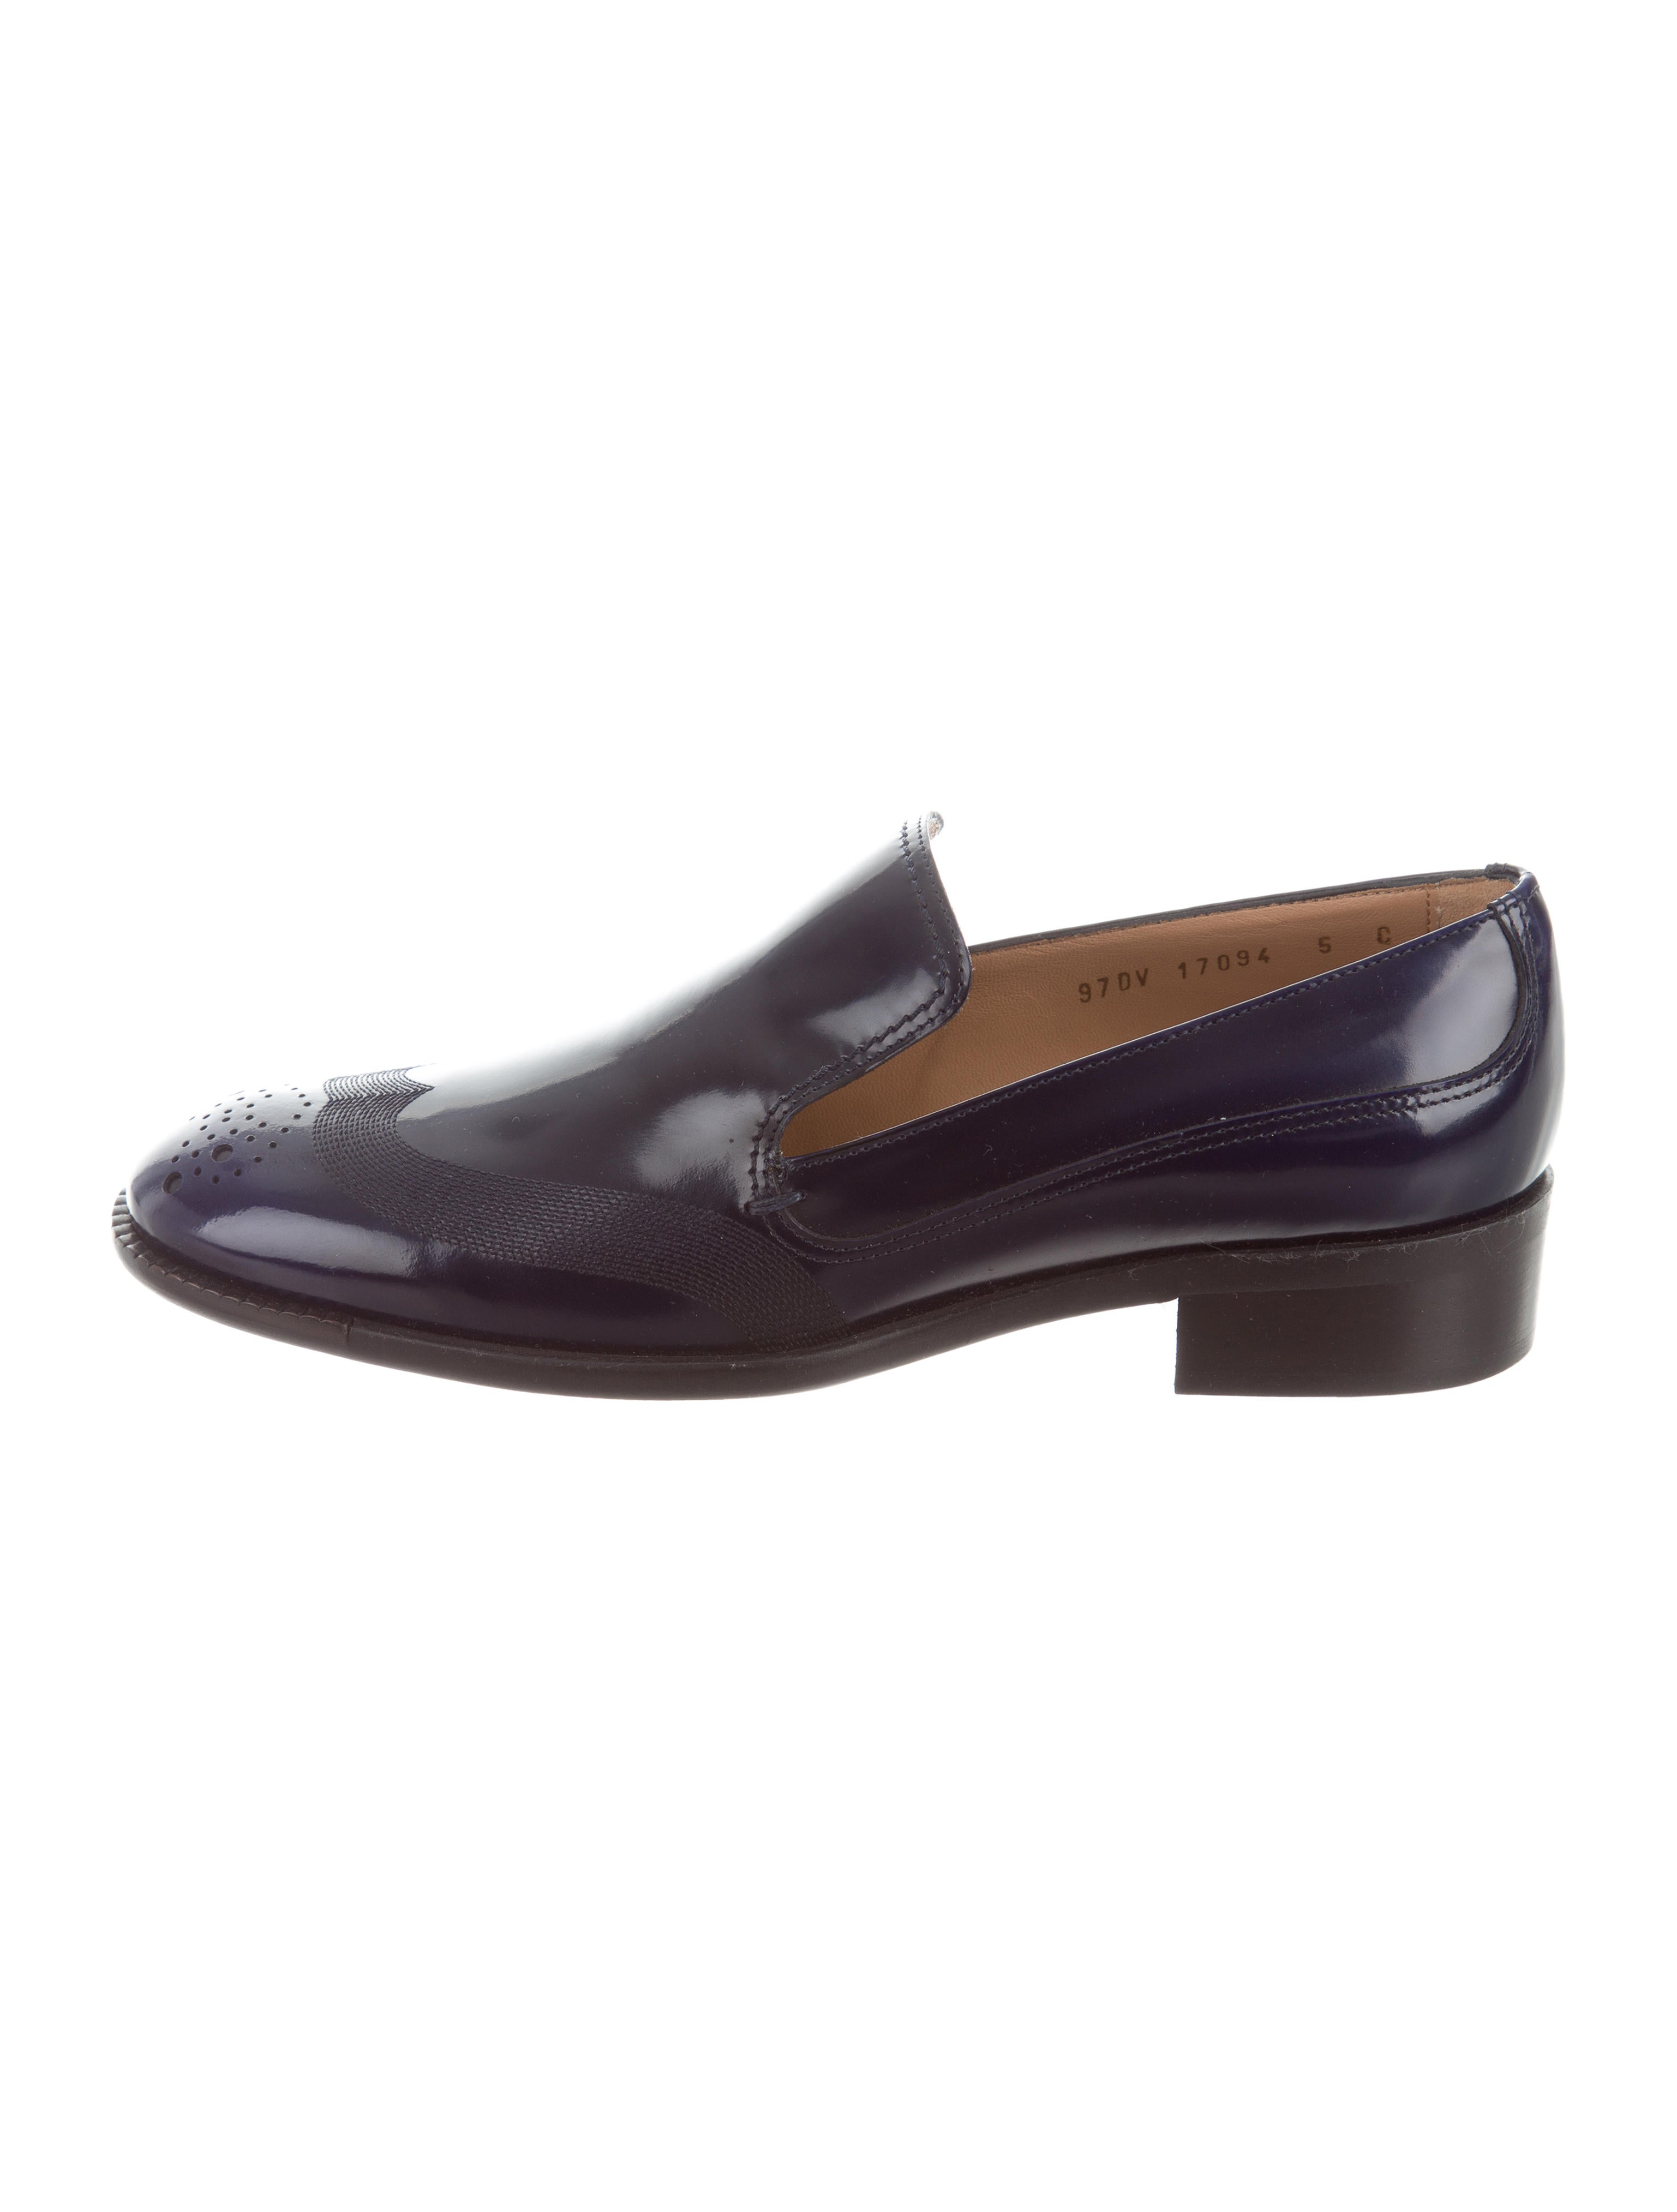 Manchester cheap price buy cheap lowest price Salvatore Ferragamo Nafe Brogue Loafers w/ Tags store cheap price online sale online xp9g32vpb